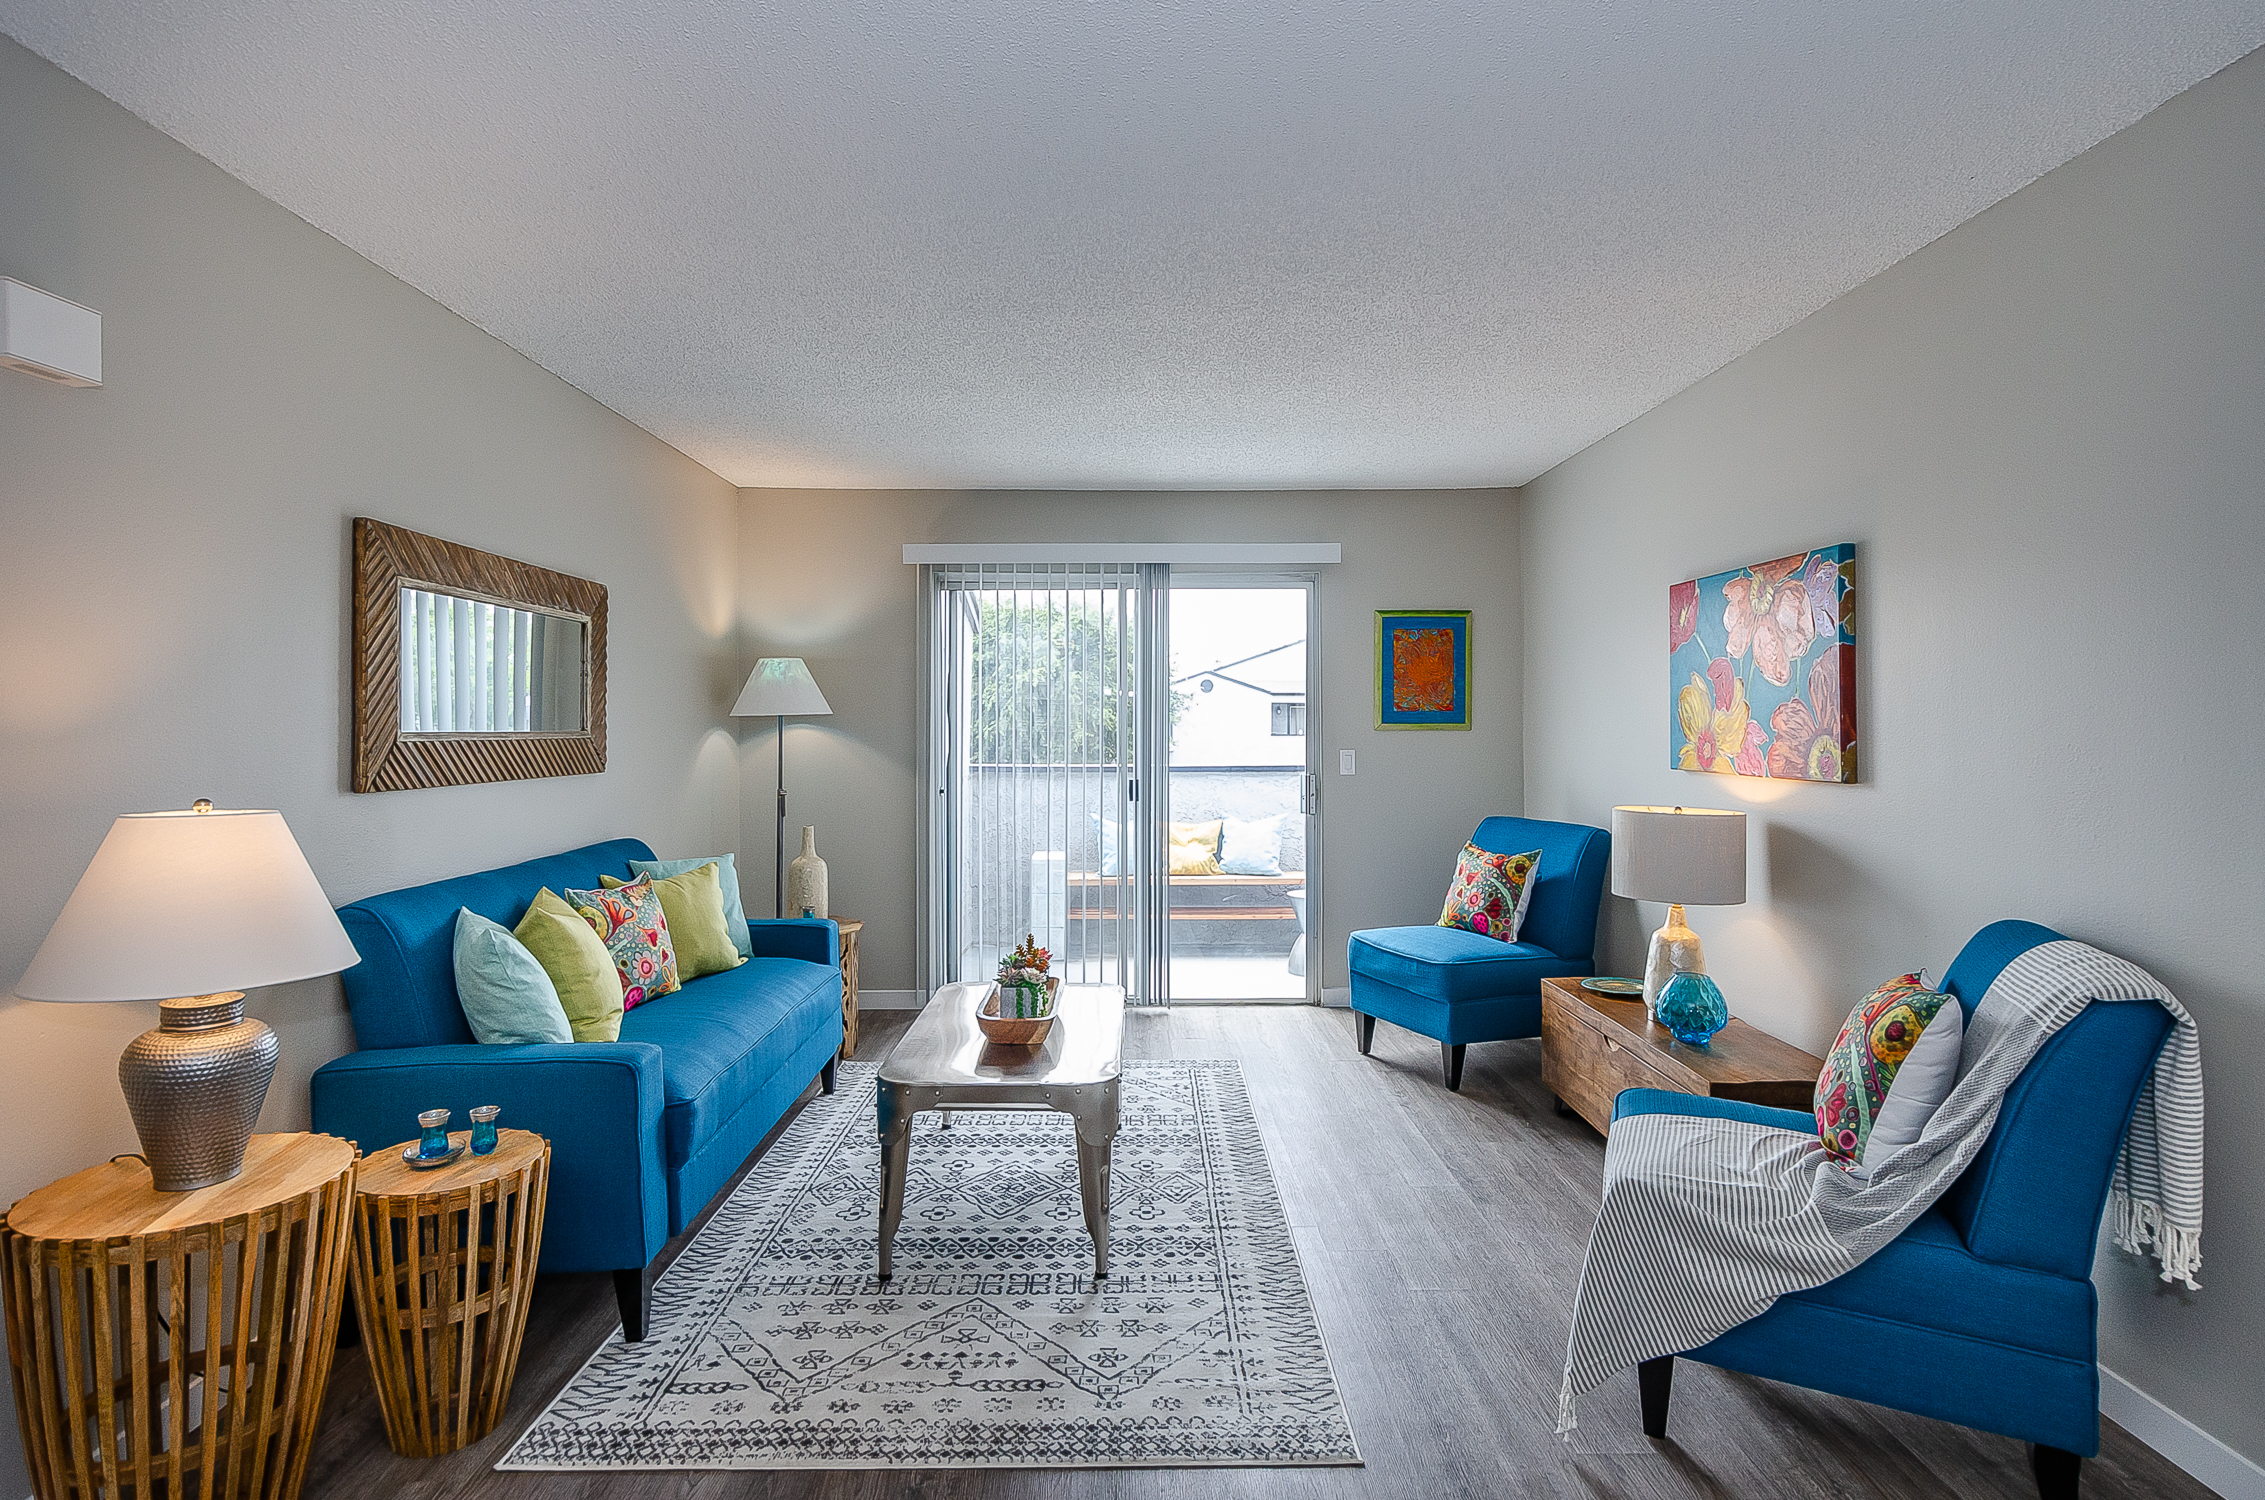 living room has wood-type plank flooring, a sliding door to the patio, and 2 walls for furniture